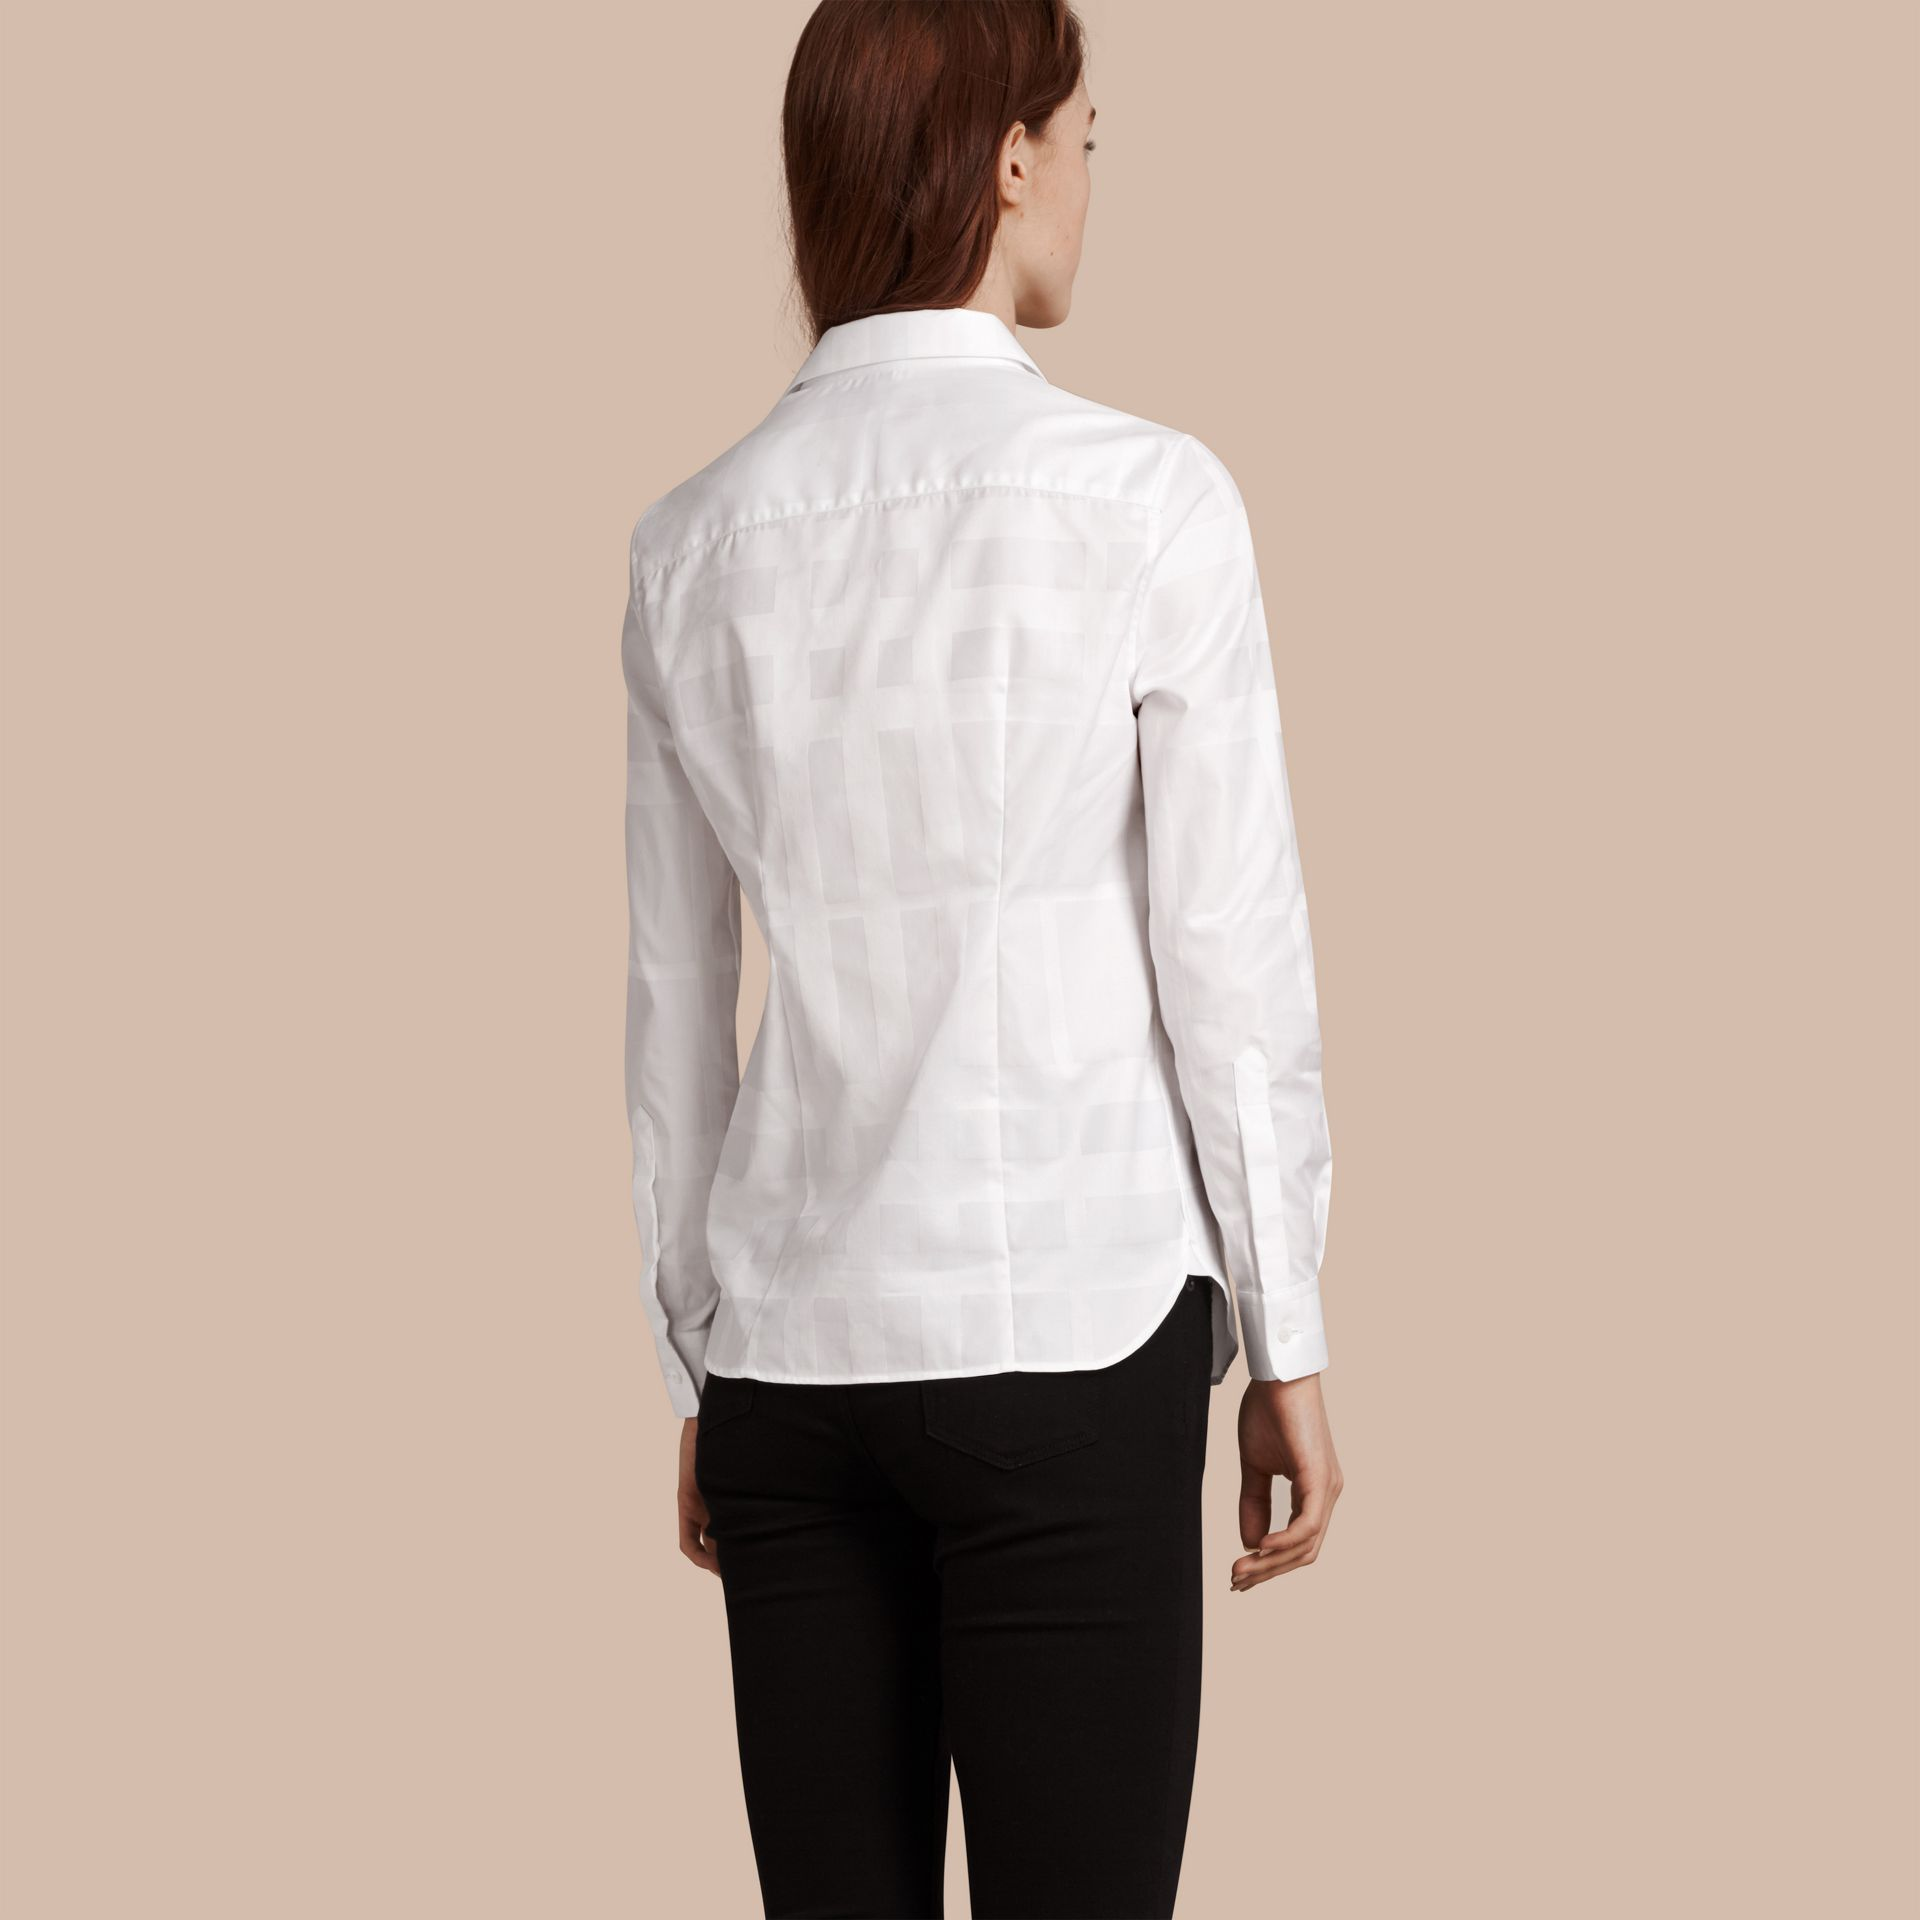 White Check Jacquard Cotton Shirt White - gallery image 3